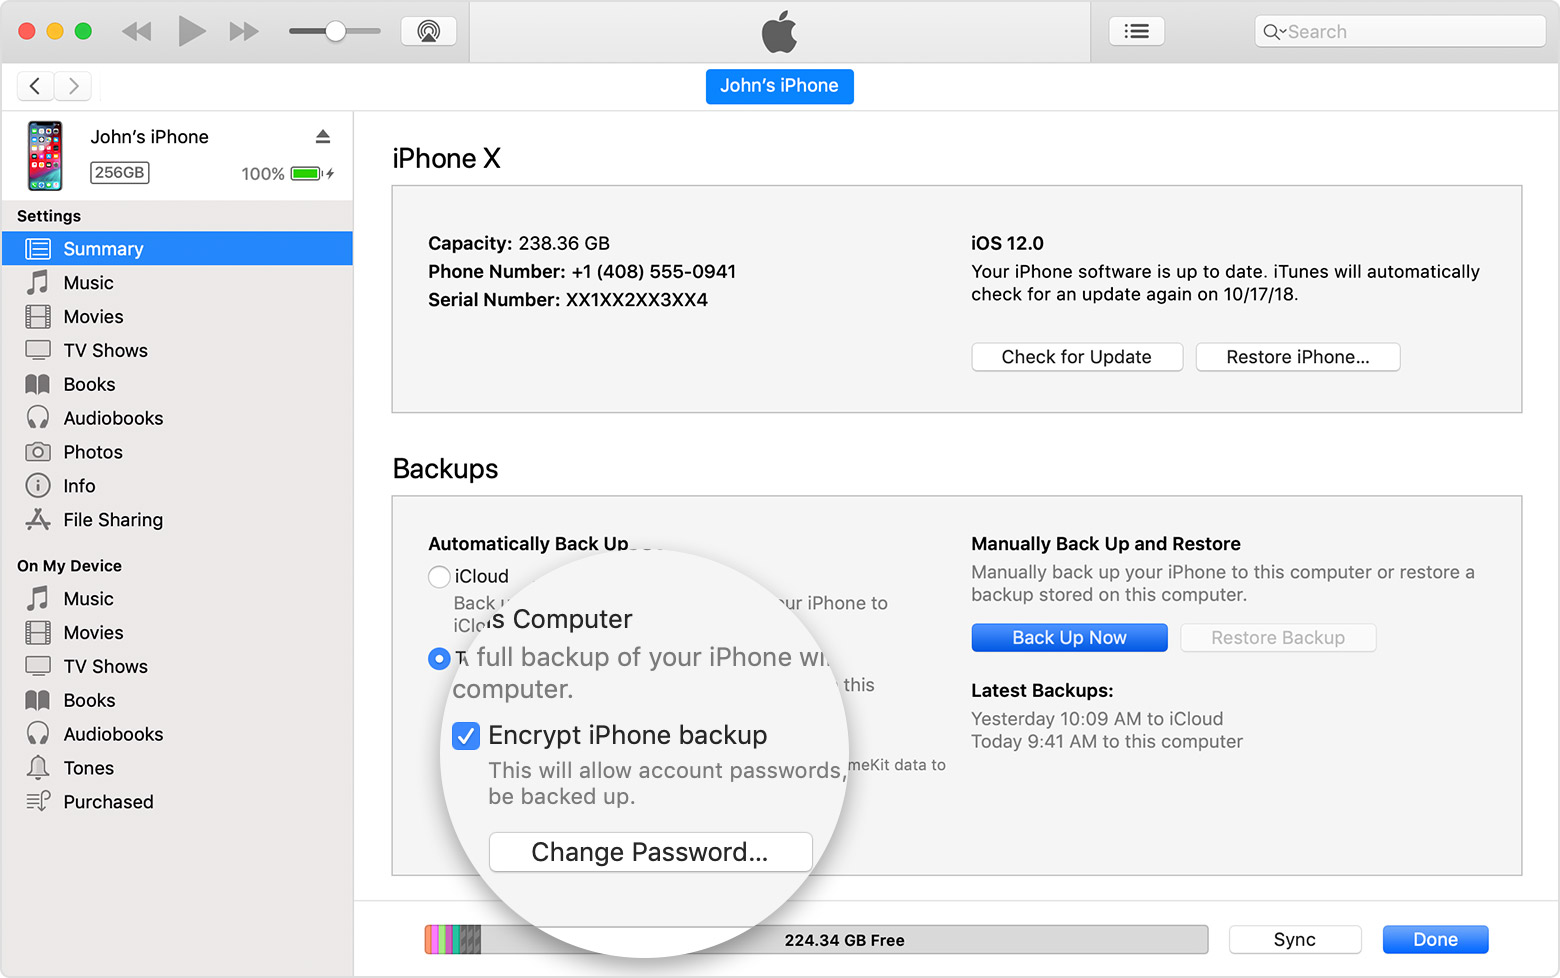 what is the password needed to restore iphone backup